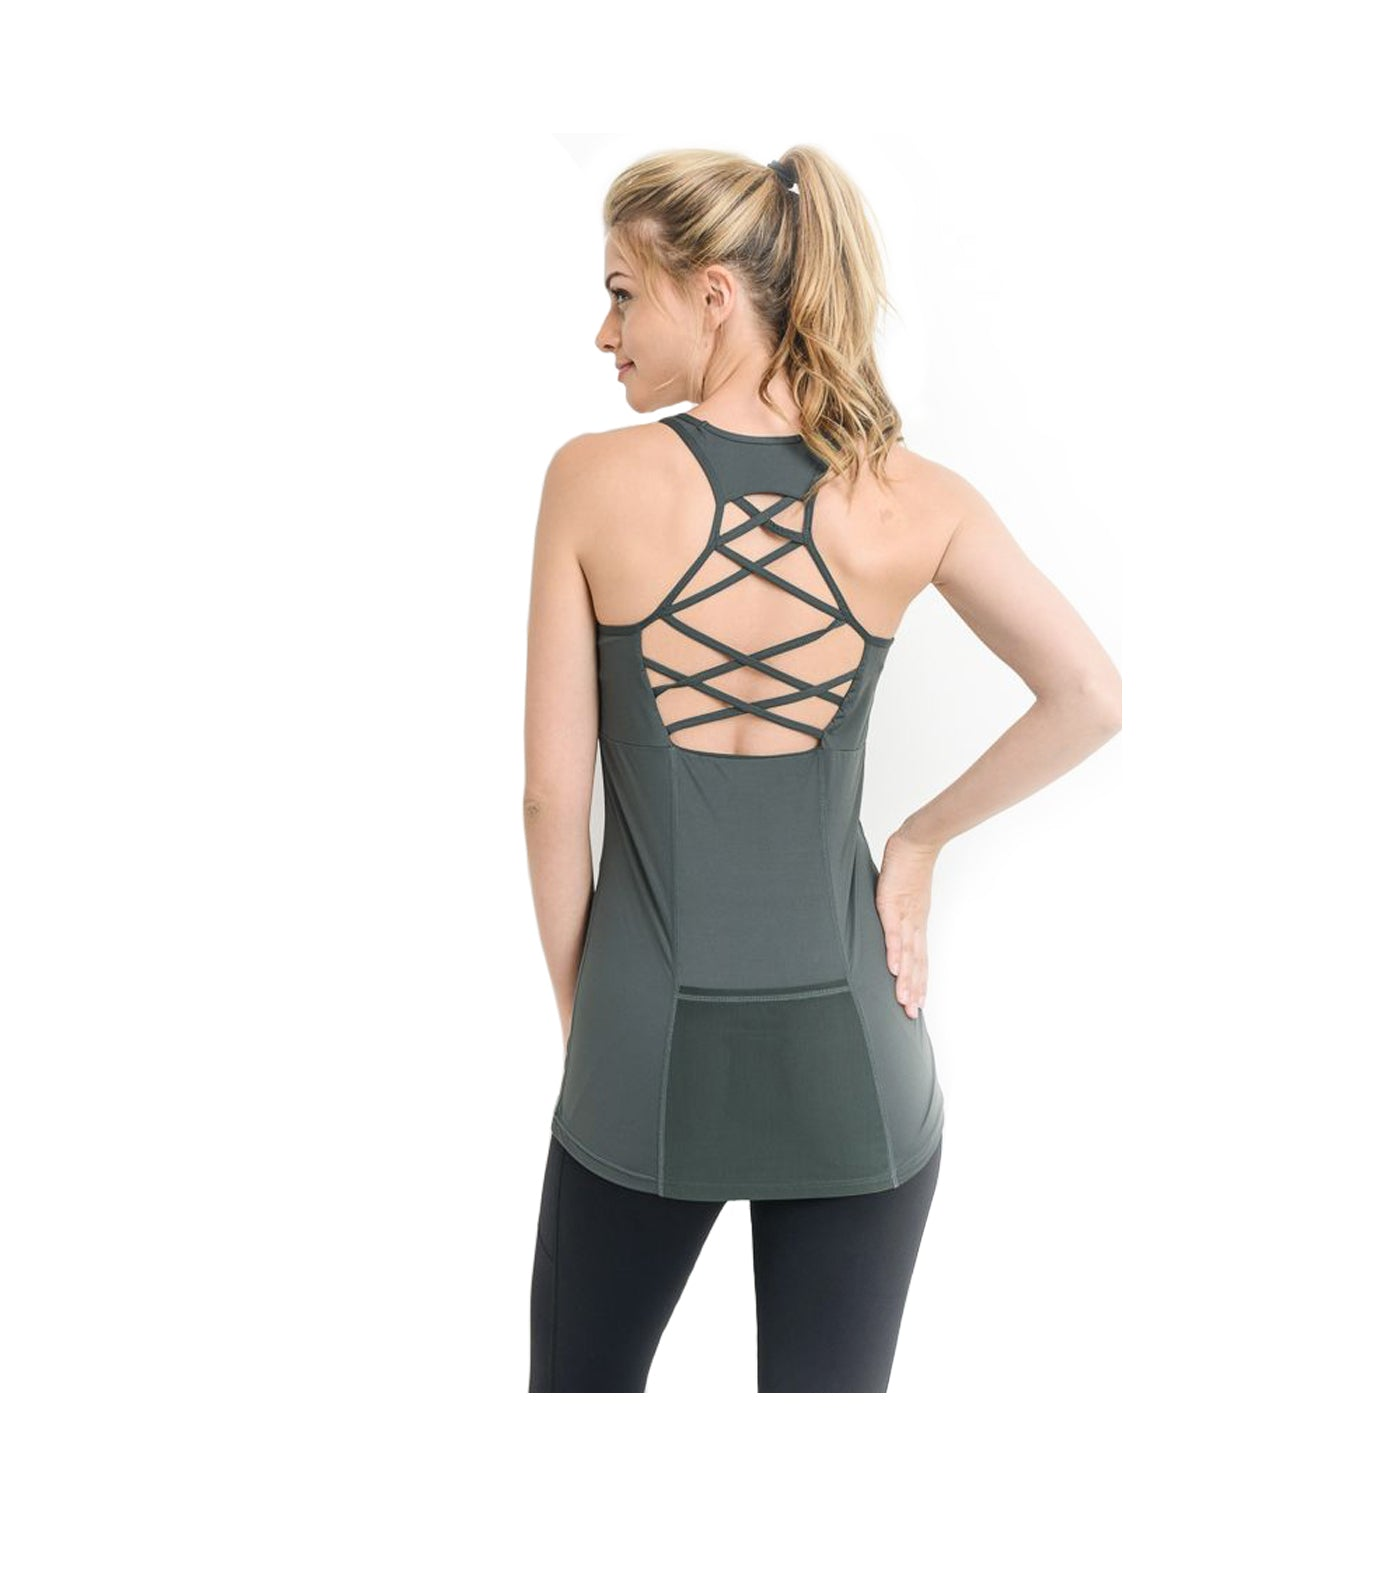 Criss Cross Athletic Tank Top Green